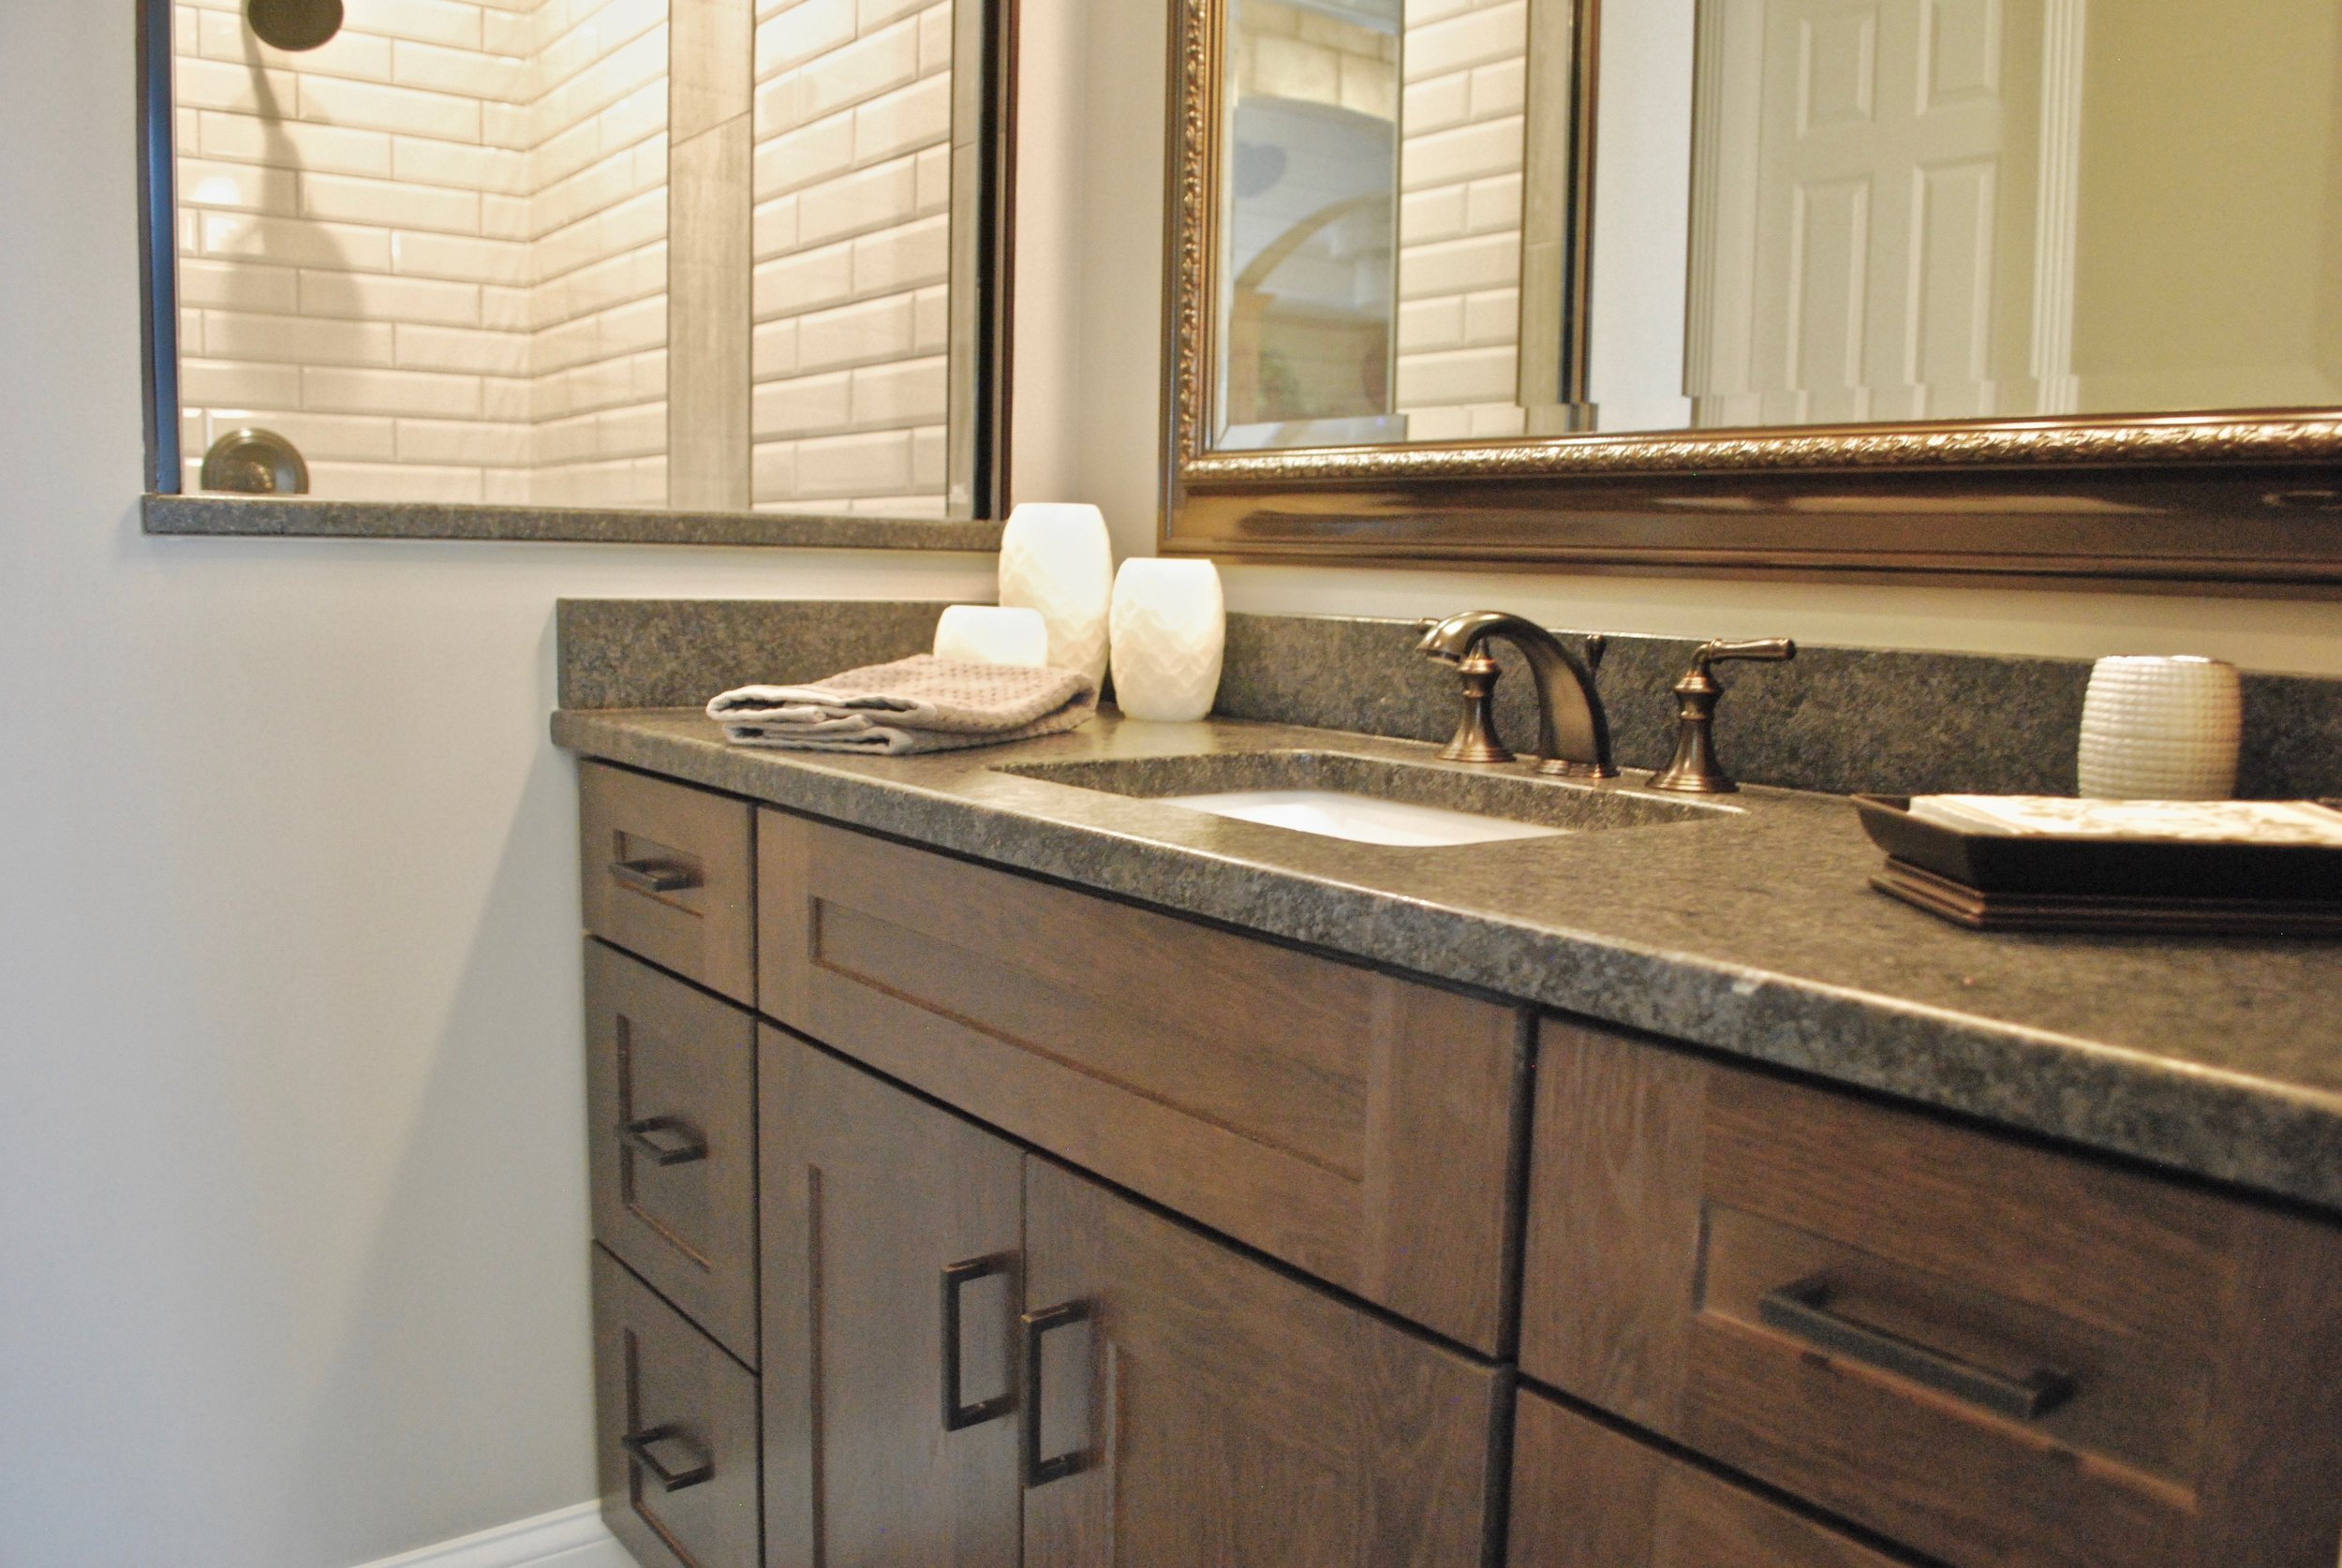 St. Charles IL Bathroom Renovations Custom Vanity .jpg